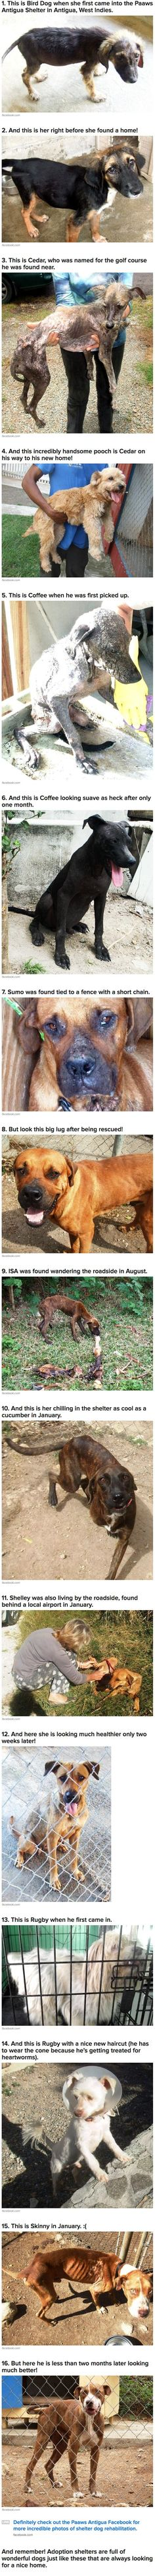 16 Incredible Transformation Photos Of Shelter Dogs »» http://www.facebook.com/paaws.antigua